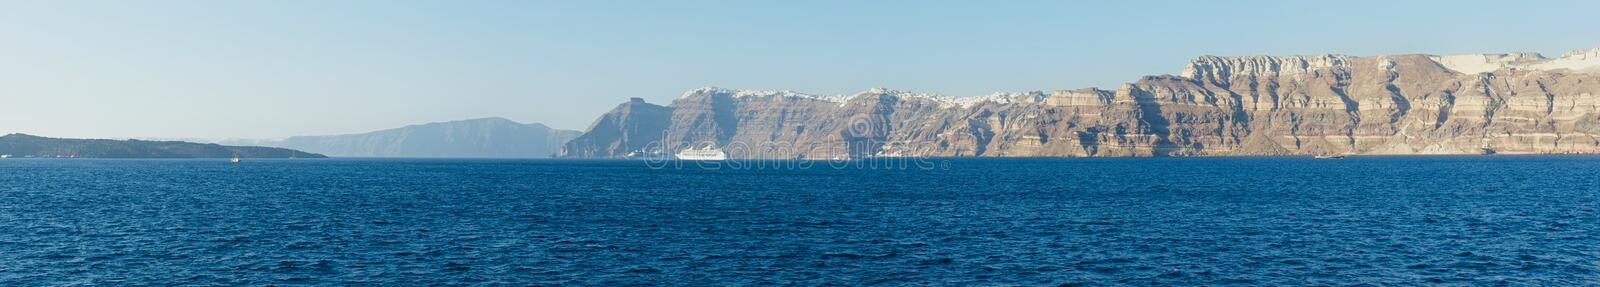 The coast of Santorini. royalty free stock image